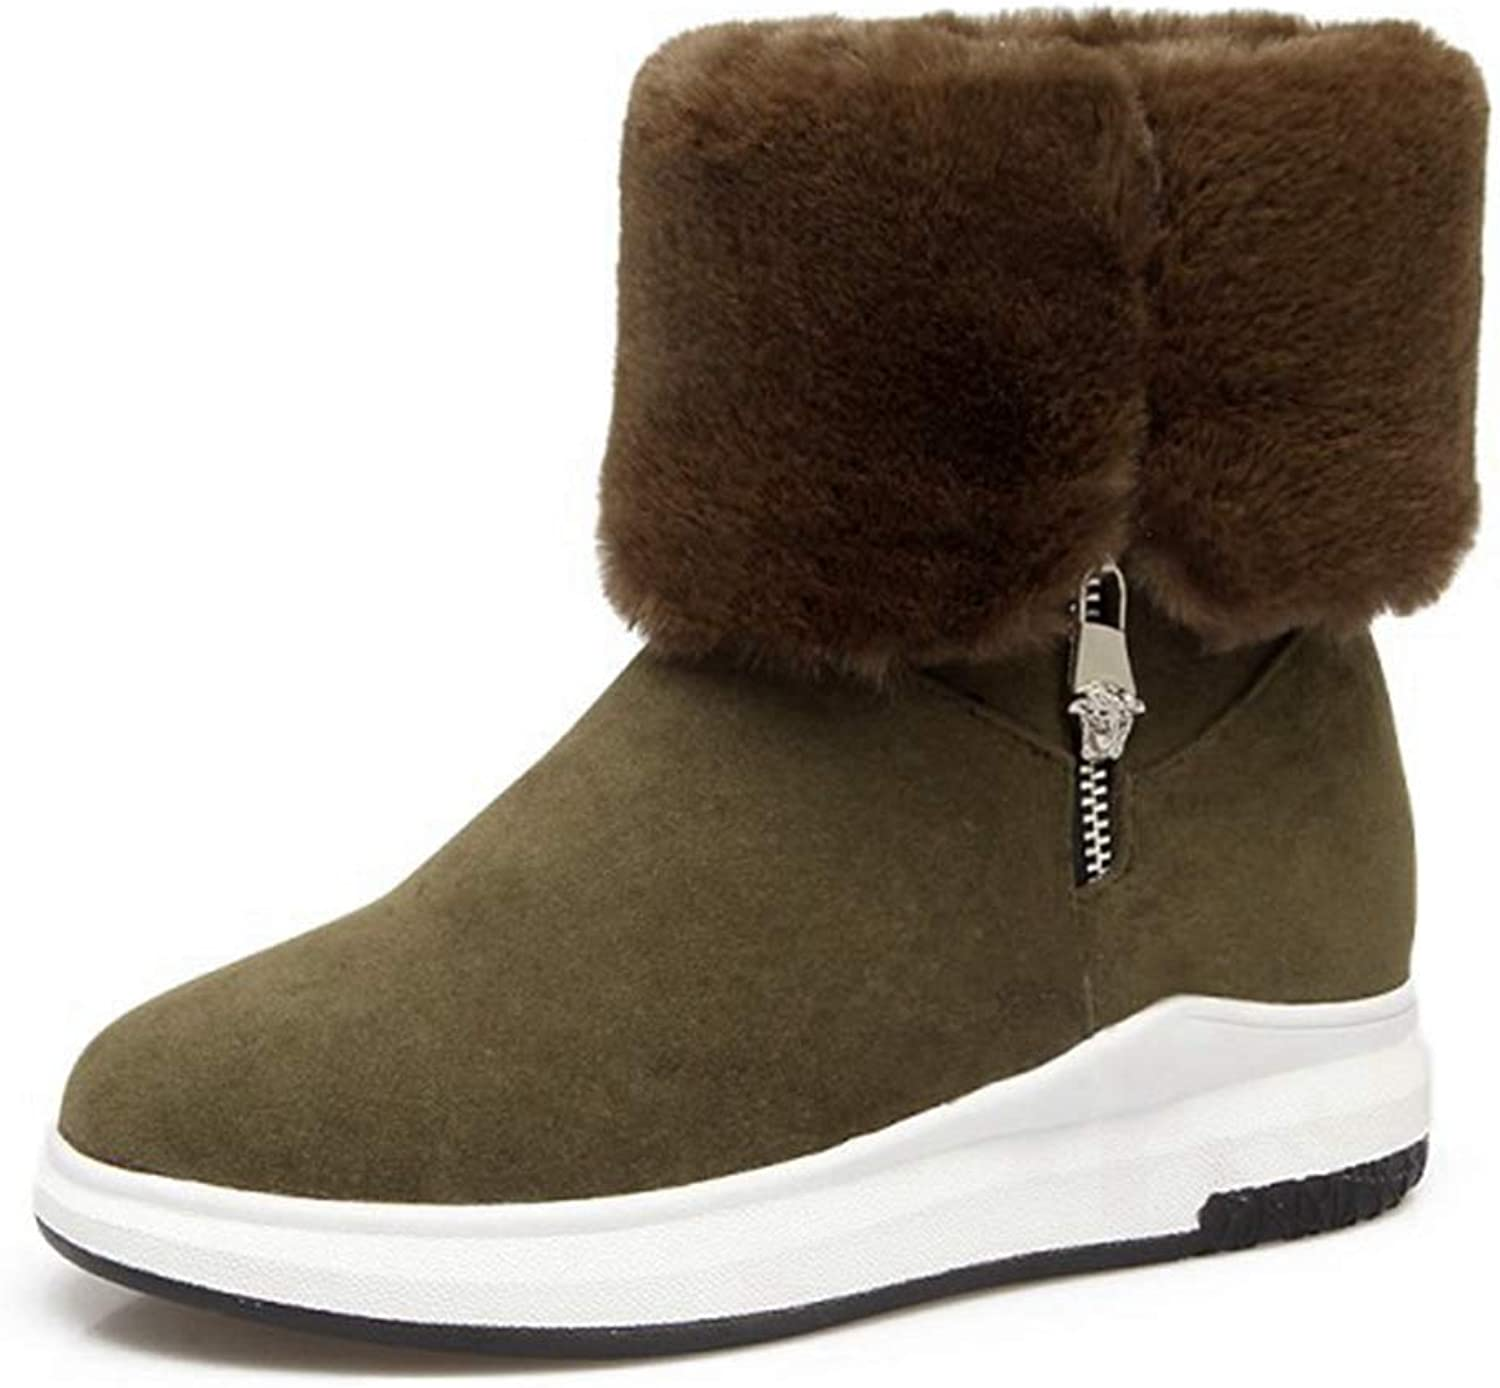 CYBLING Winter Mid Calf Boots for Women Fashion Waterproof Wedge Heel Warm Snow Boots Ankle Boots